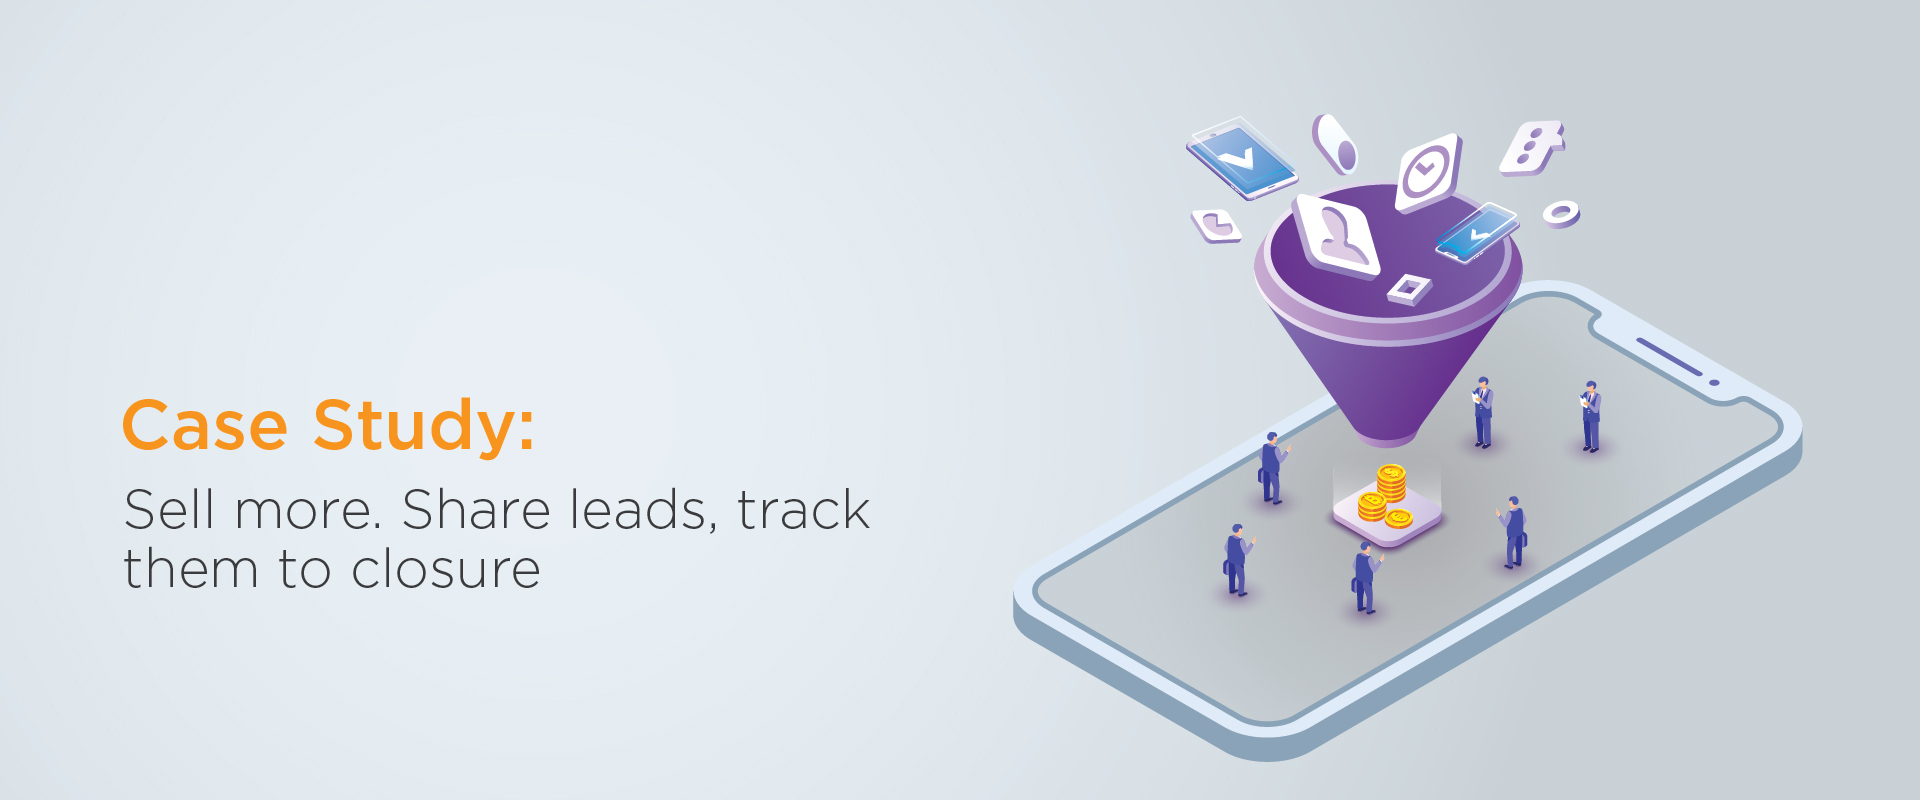 Sell more. Share leads, track them to closure